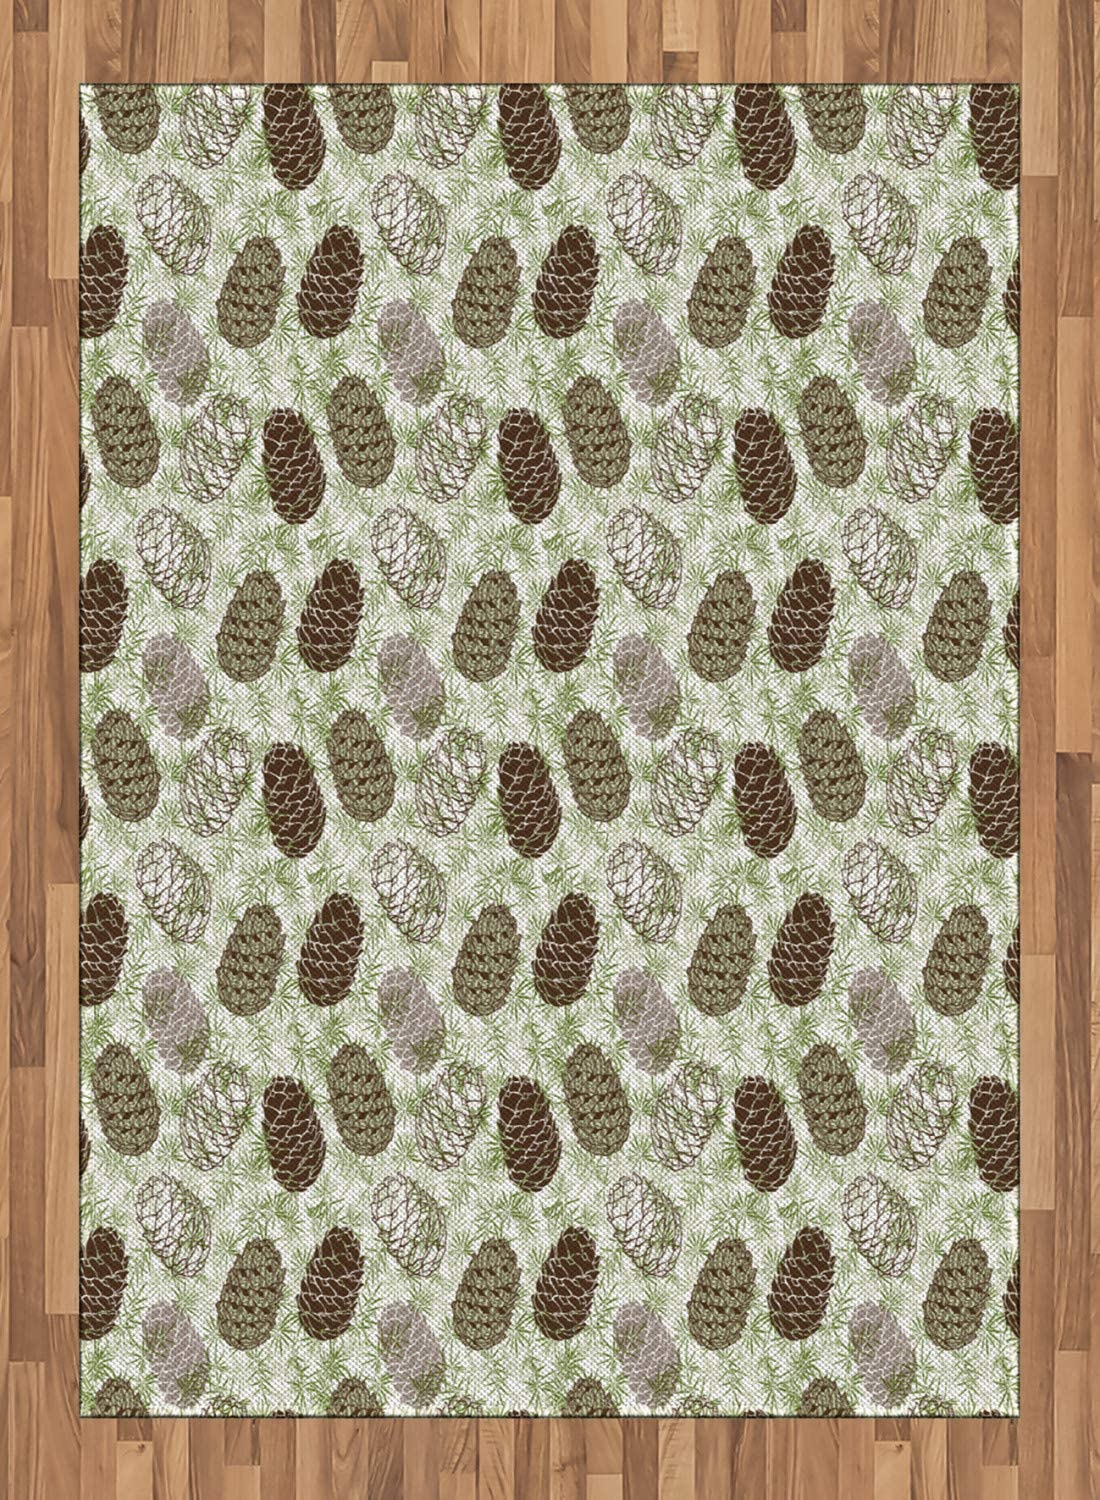 Abakuhaus Pine Cone Area Rug Forest Conifers Greenland Foliage Spruce Tree Woodland Style Botany Flat Woven Accent Rug For Living Room Bedroom Dining Room 5 2 X 7 5 Fern Green Brown Taupe Amazon Co Uk Kitchen Home